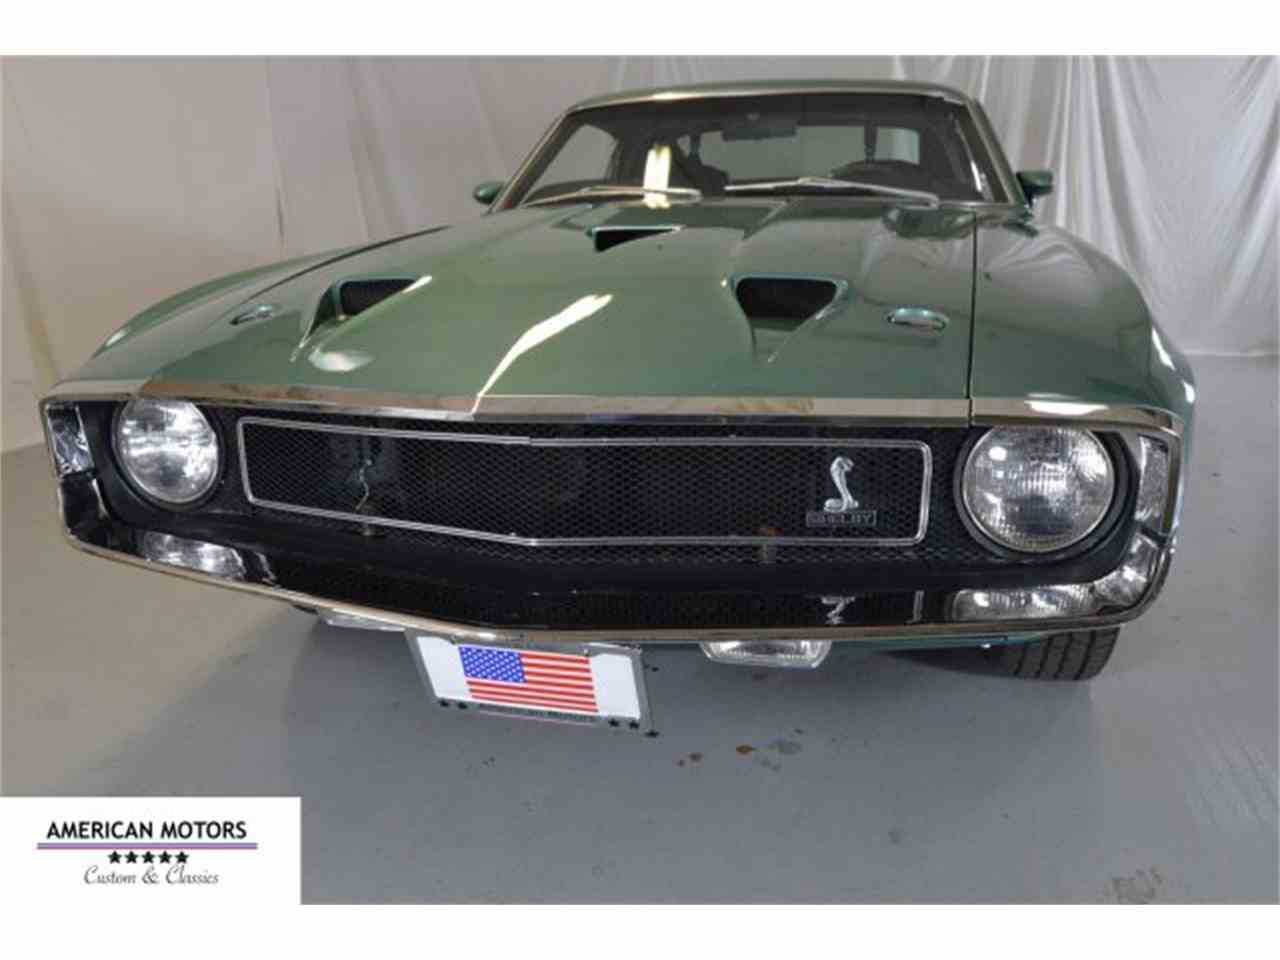 1969 Ford Shelby Gt500 Fastback For Sale In Mustang Mach 1 Prev Next